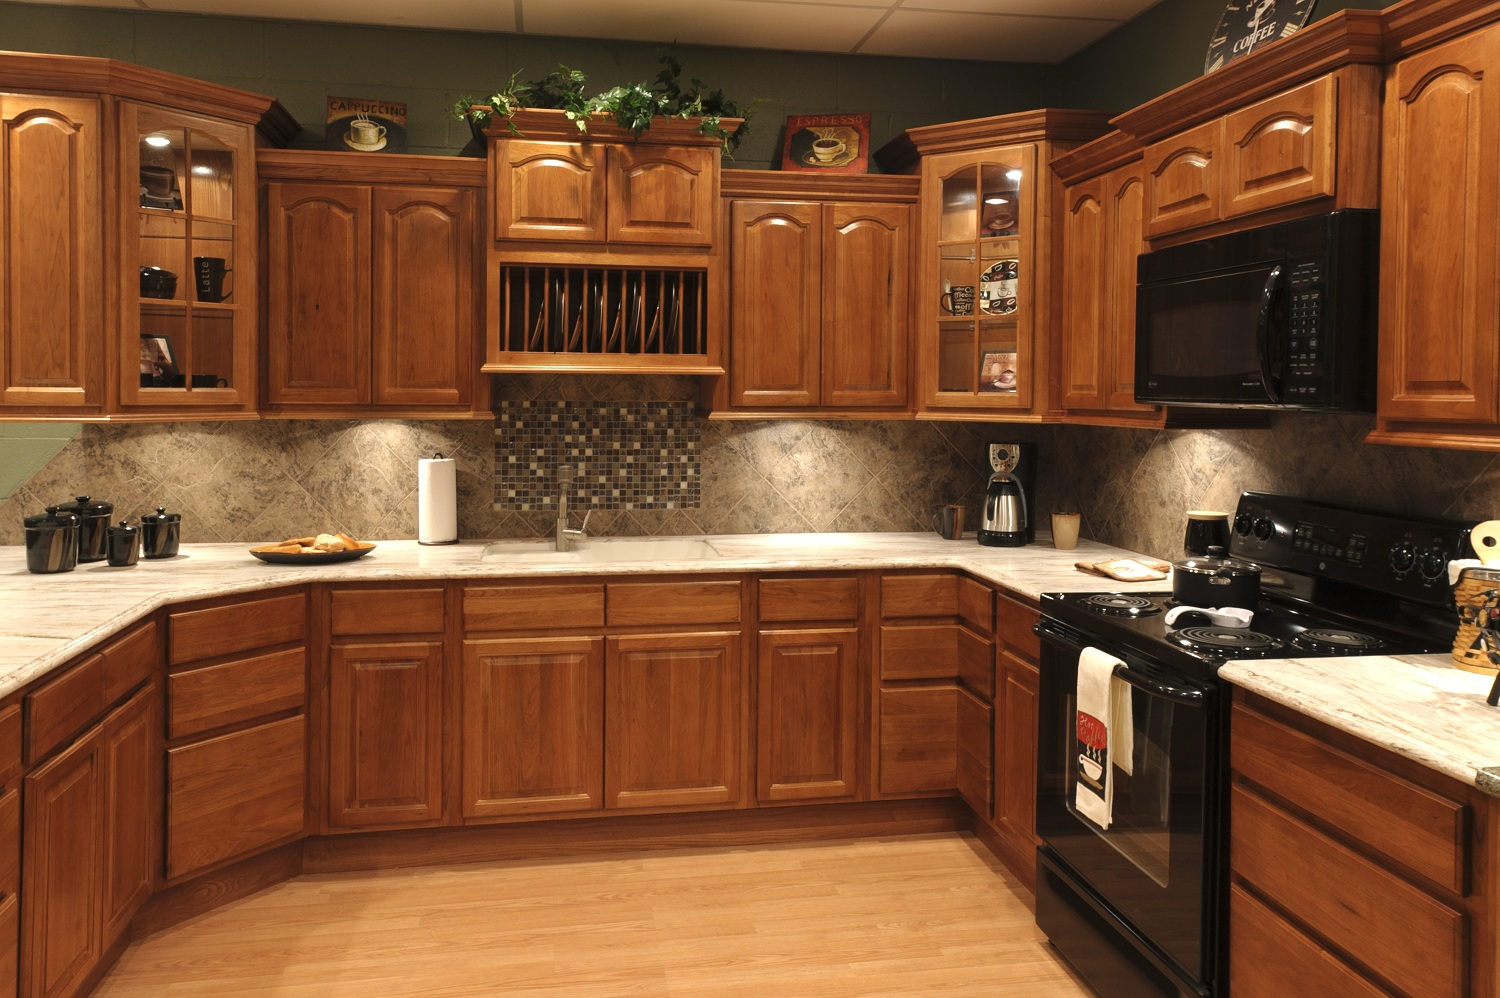 Hill Hardwoods Beautiful JMark Kitchen Cabinets I Shop Stark Blog